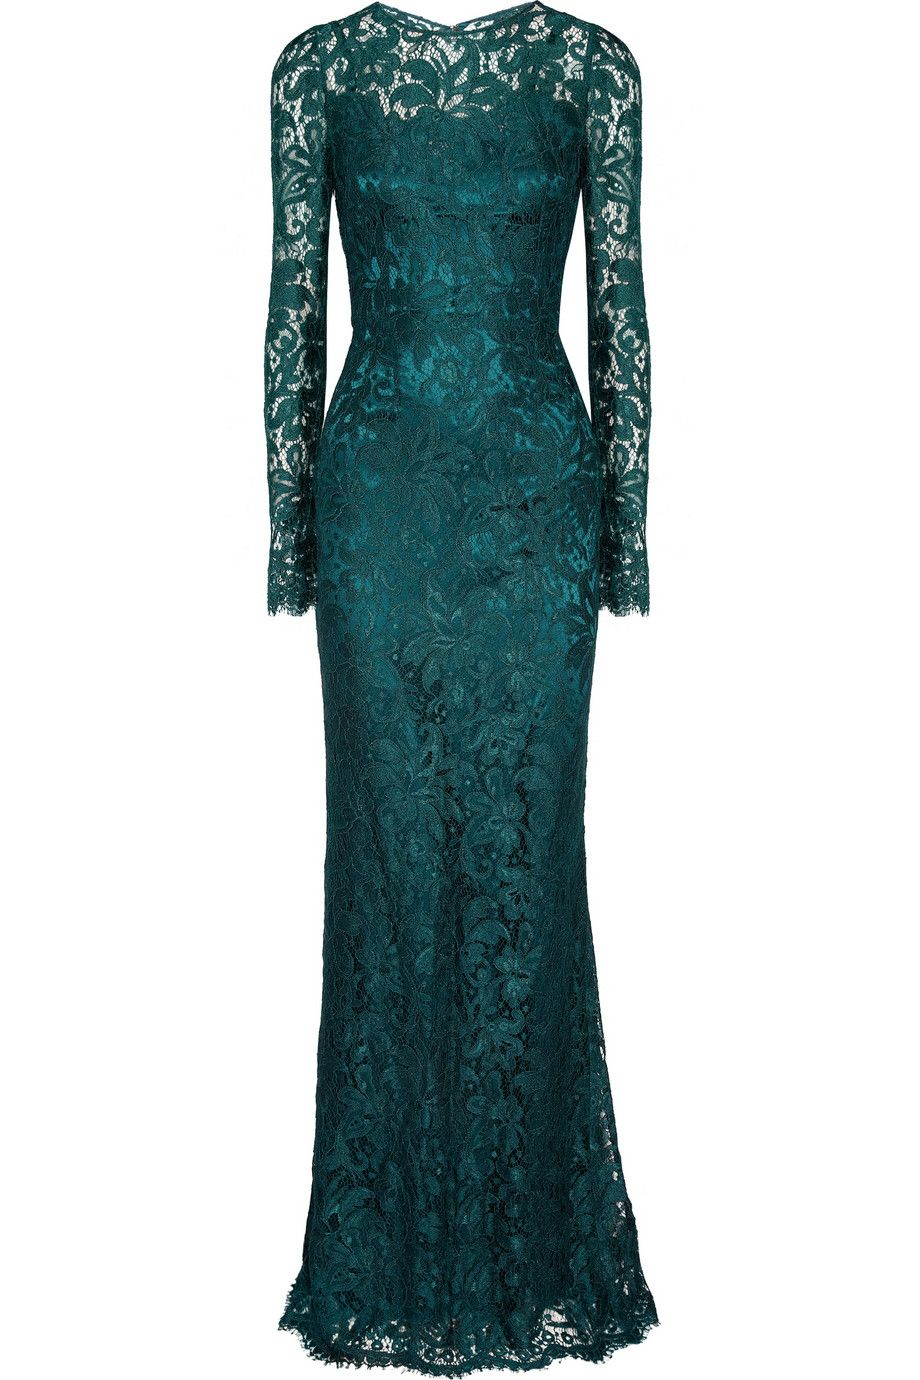 Dolce & GabbanaLace gown.